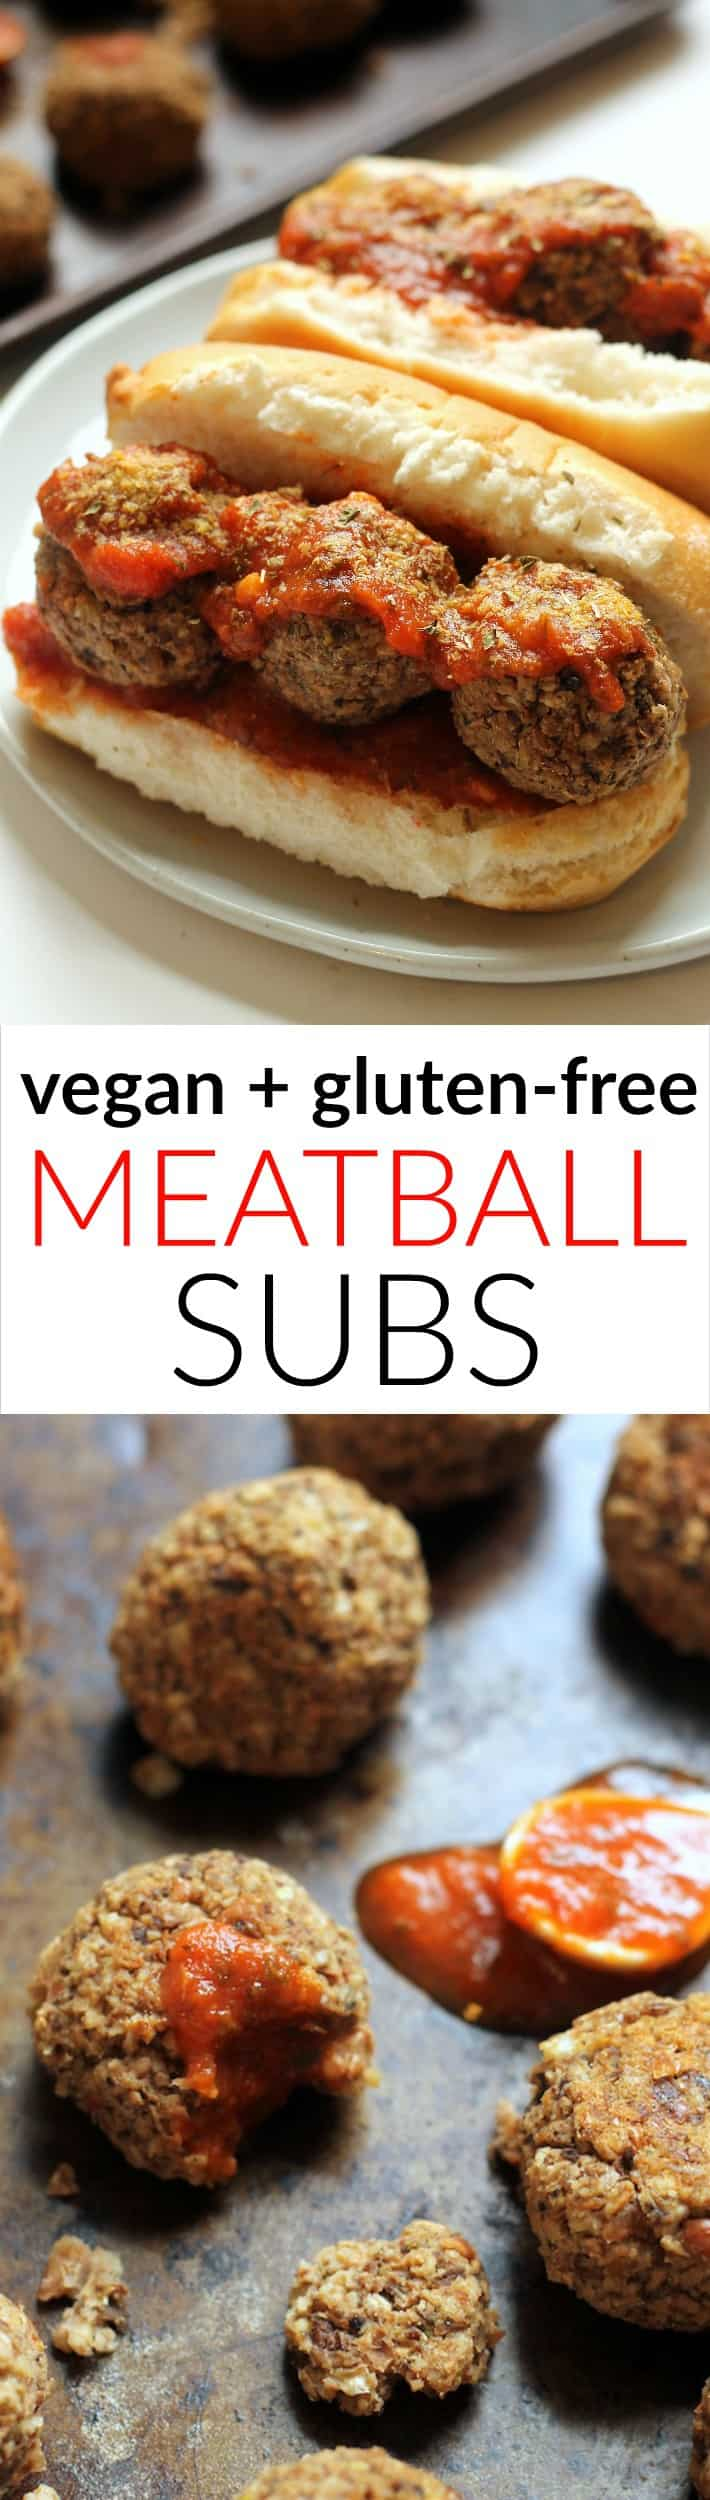 The BEST vegan meatball sub! Loaded with beans, Italian spices, and marinara on a toasty bun. Vegan, gluten-free, and kid-friendly!